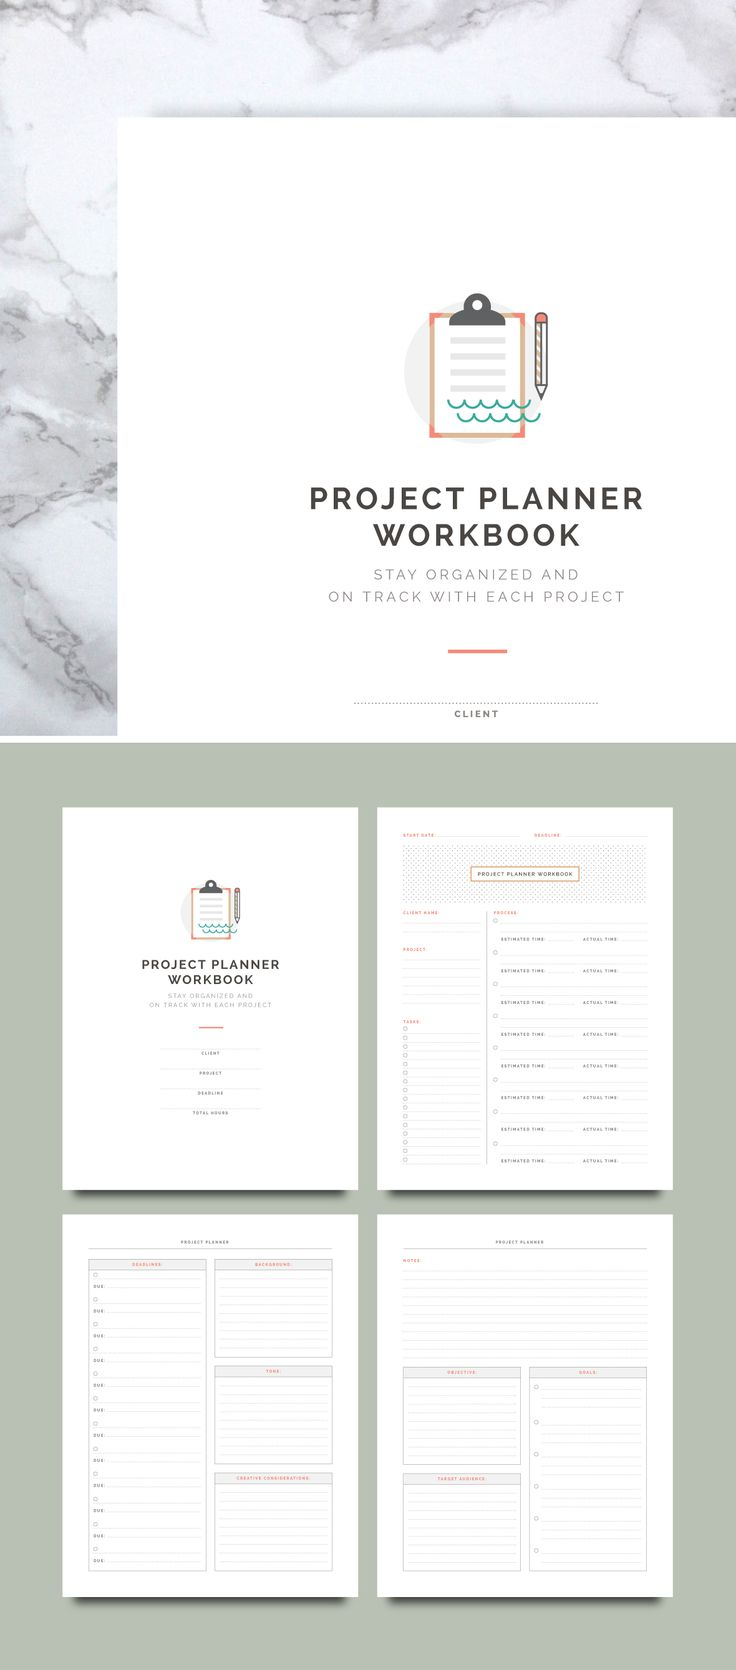 Project Planner - Spruce Rd. Project Planner Worksheets | Spruce Rd. for Elle & Co